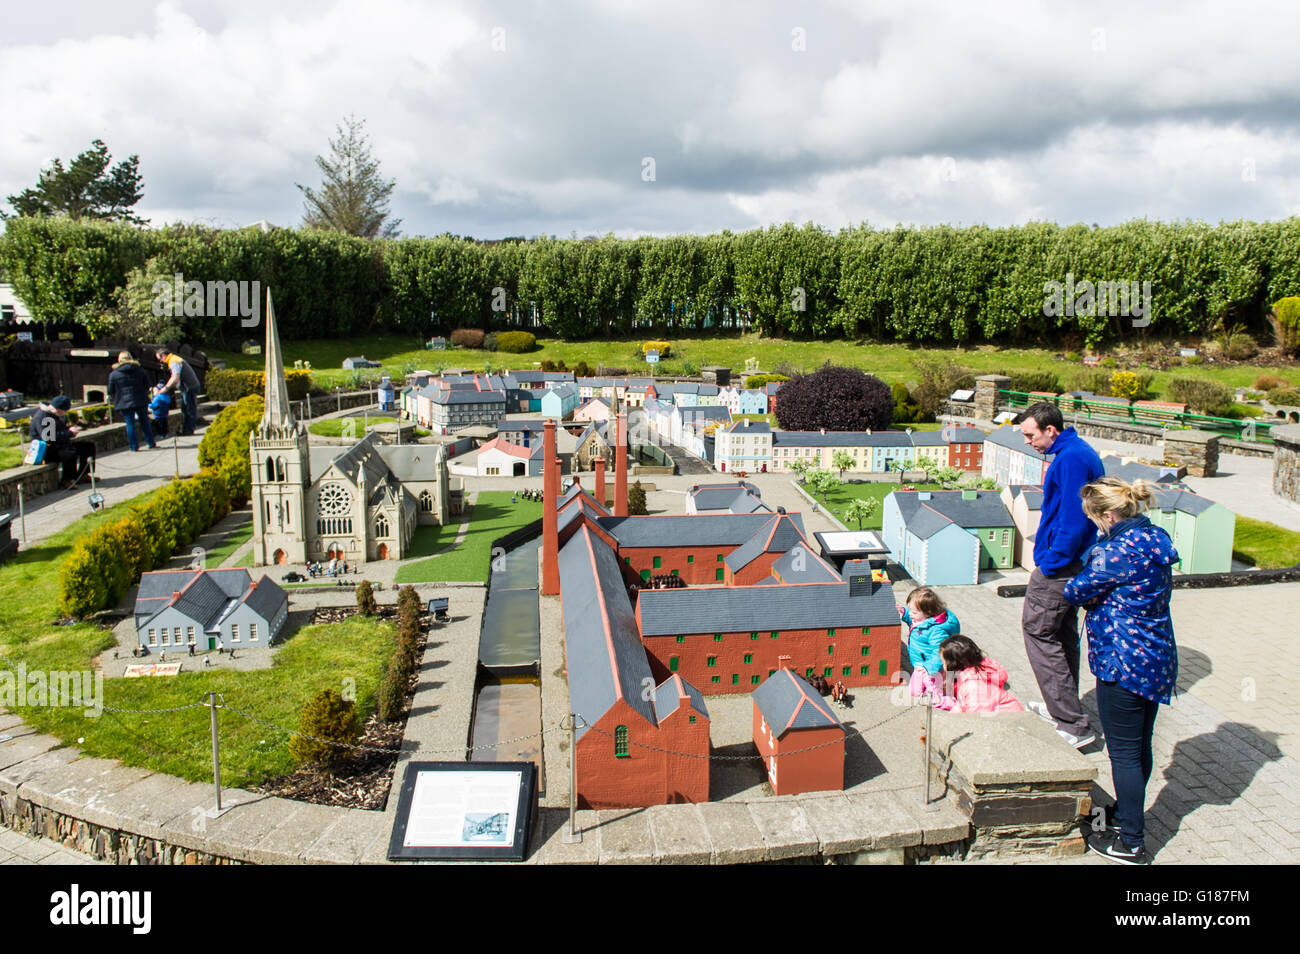 visitors-walk-round-the-clonakilty-section-of-the-clonakilty-model-G187FM.jpg